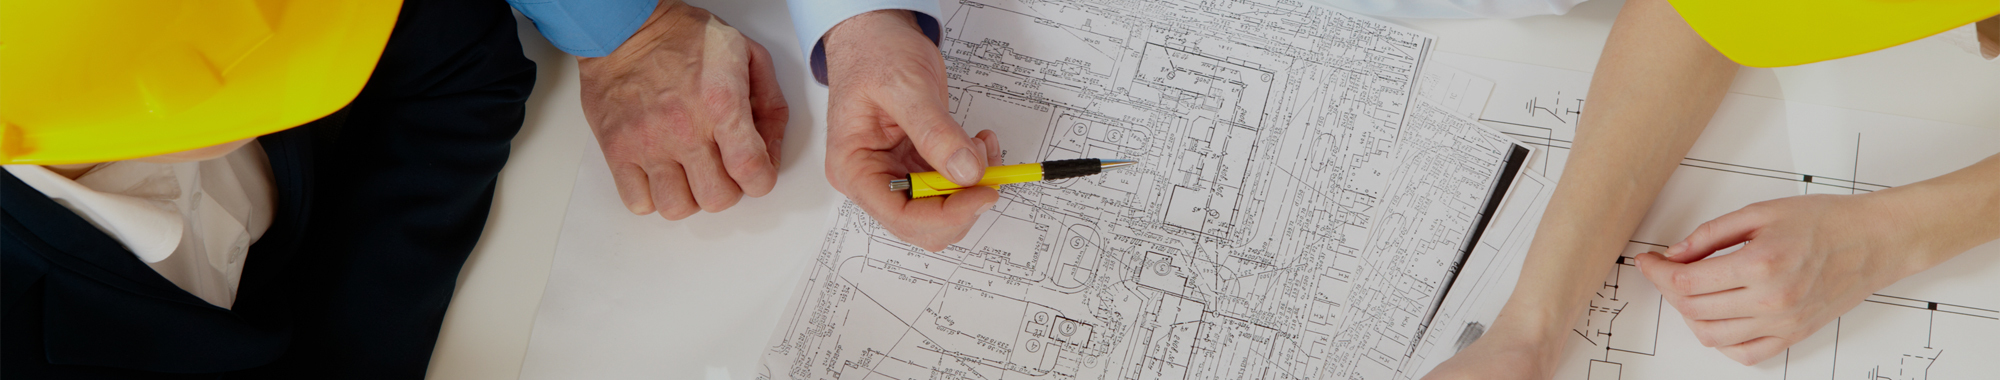 Planning and Project Controls - Gold Group